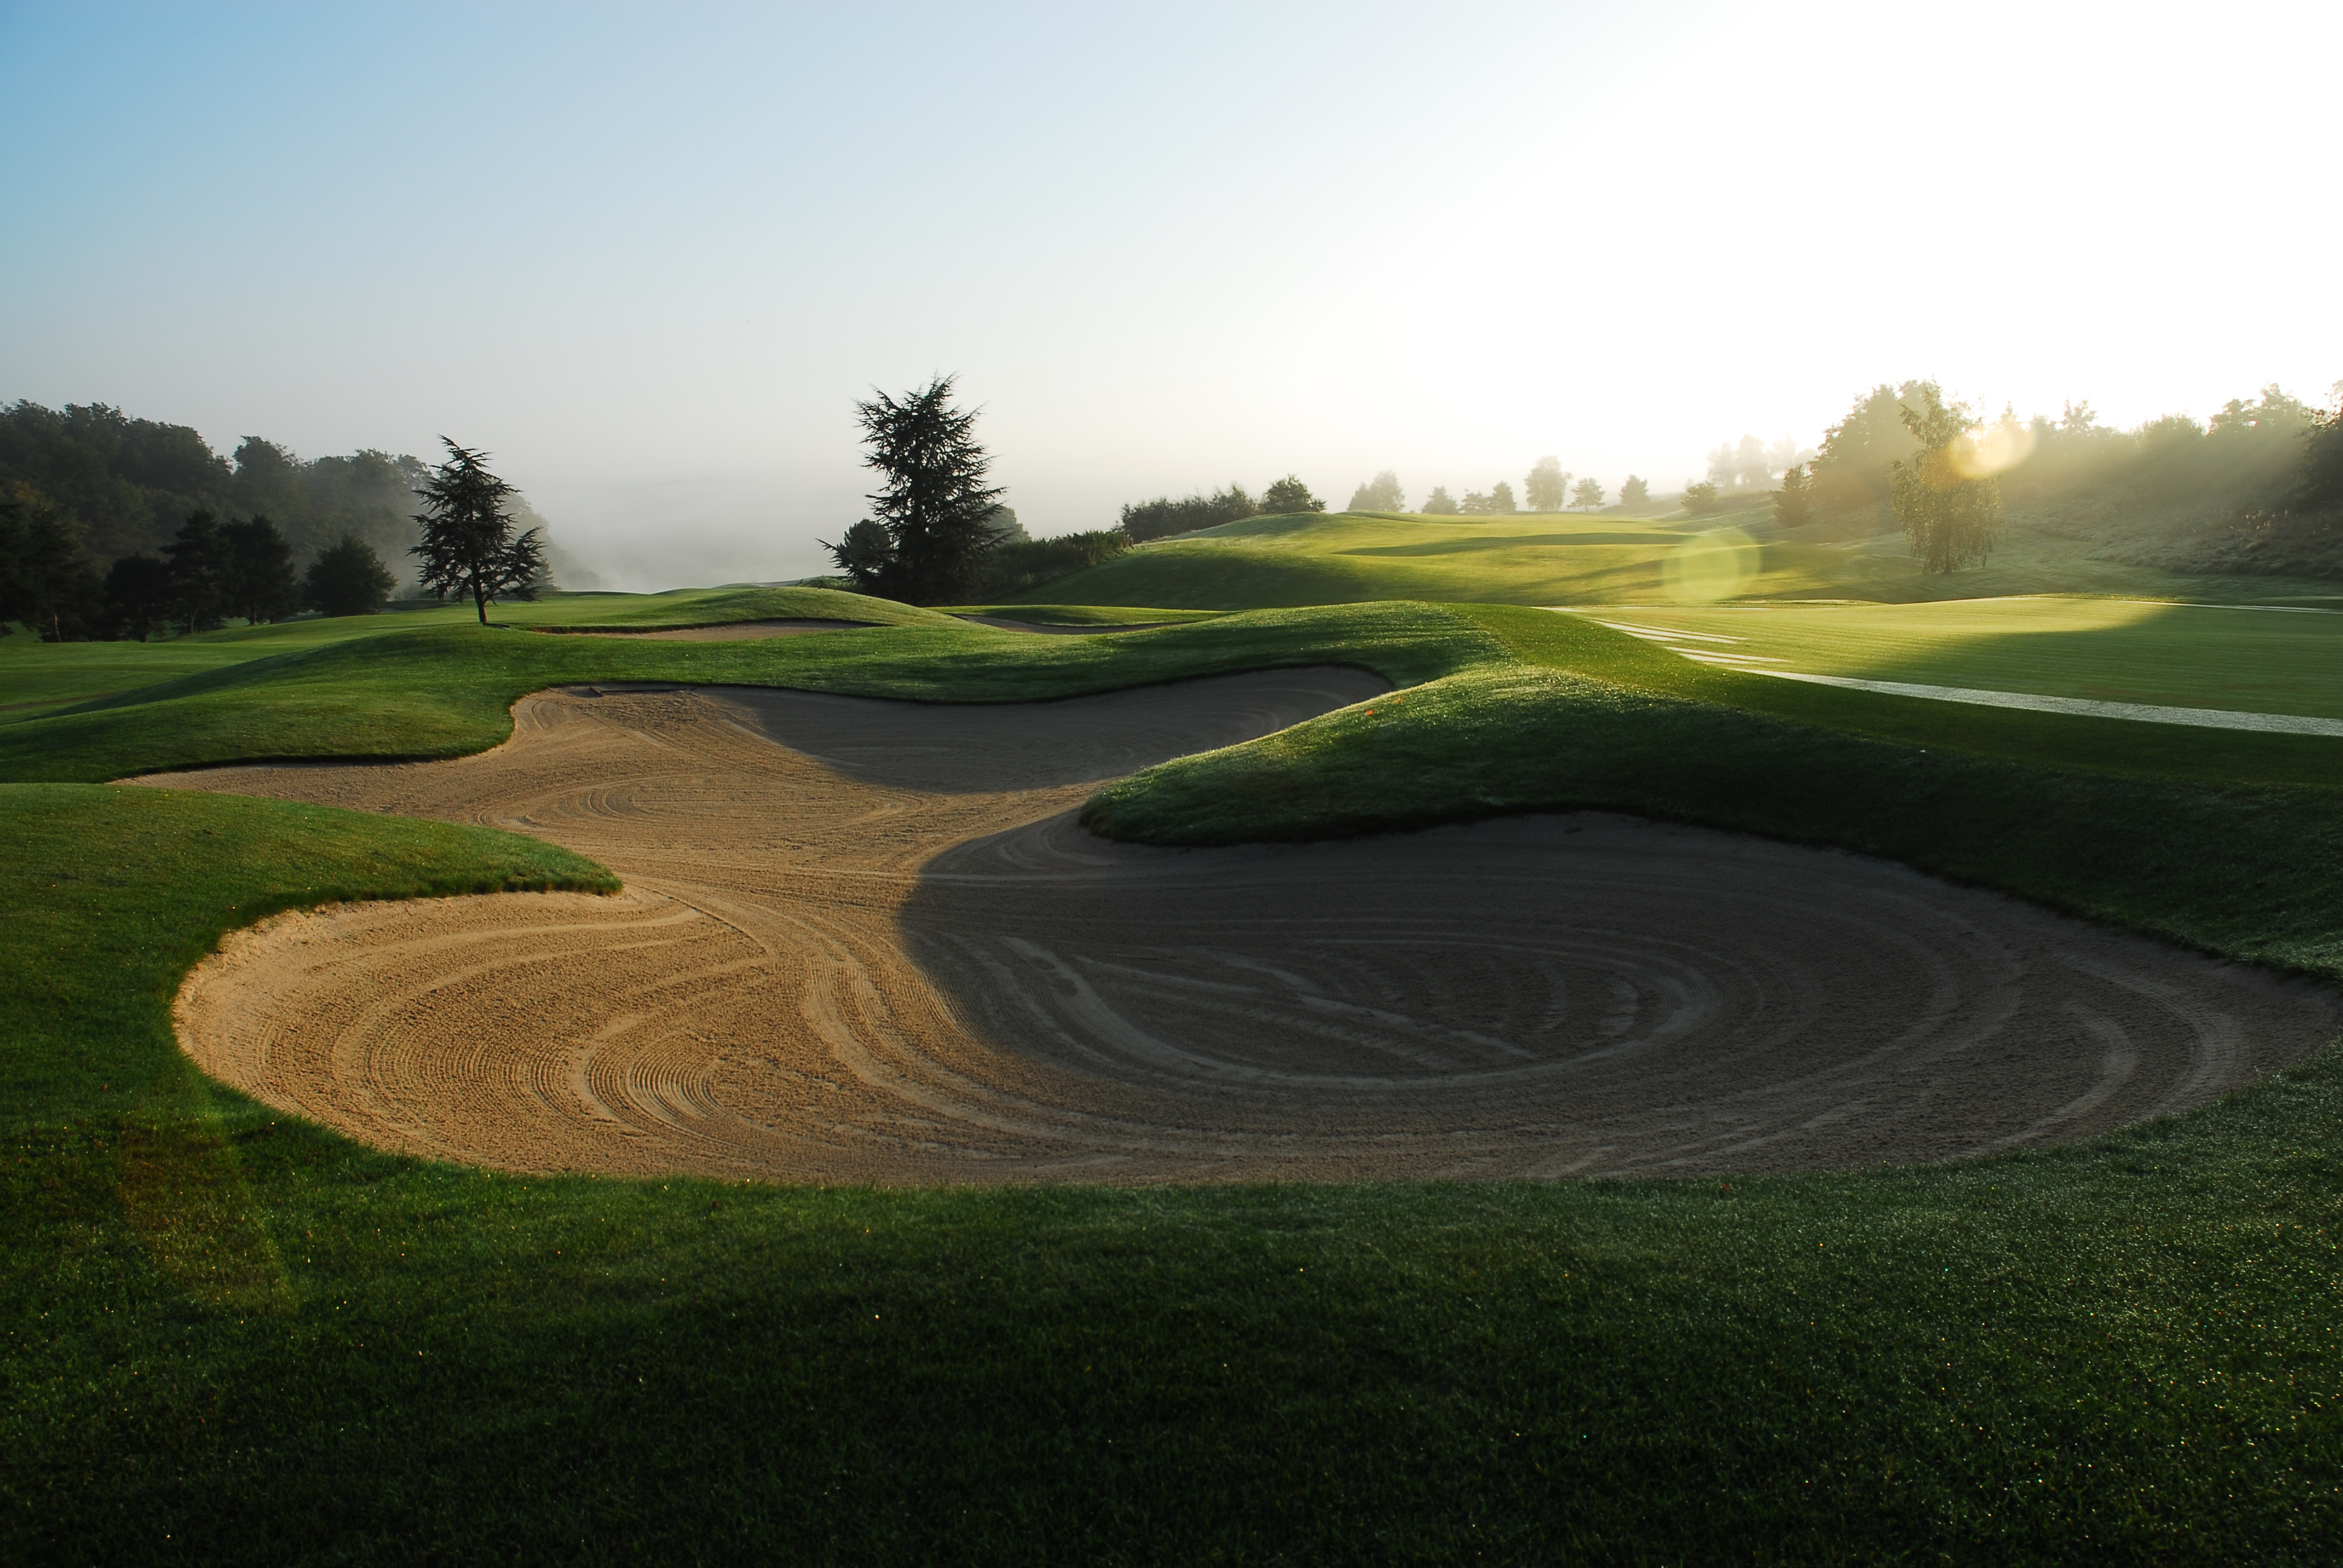 Overview of golf course named Kikuoka Golf and Country Club